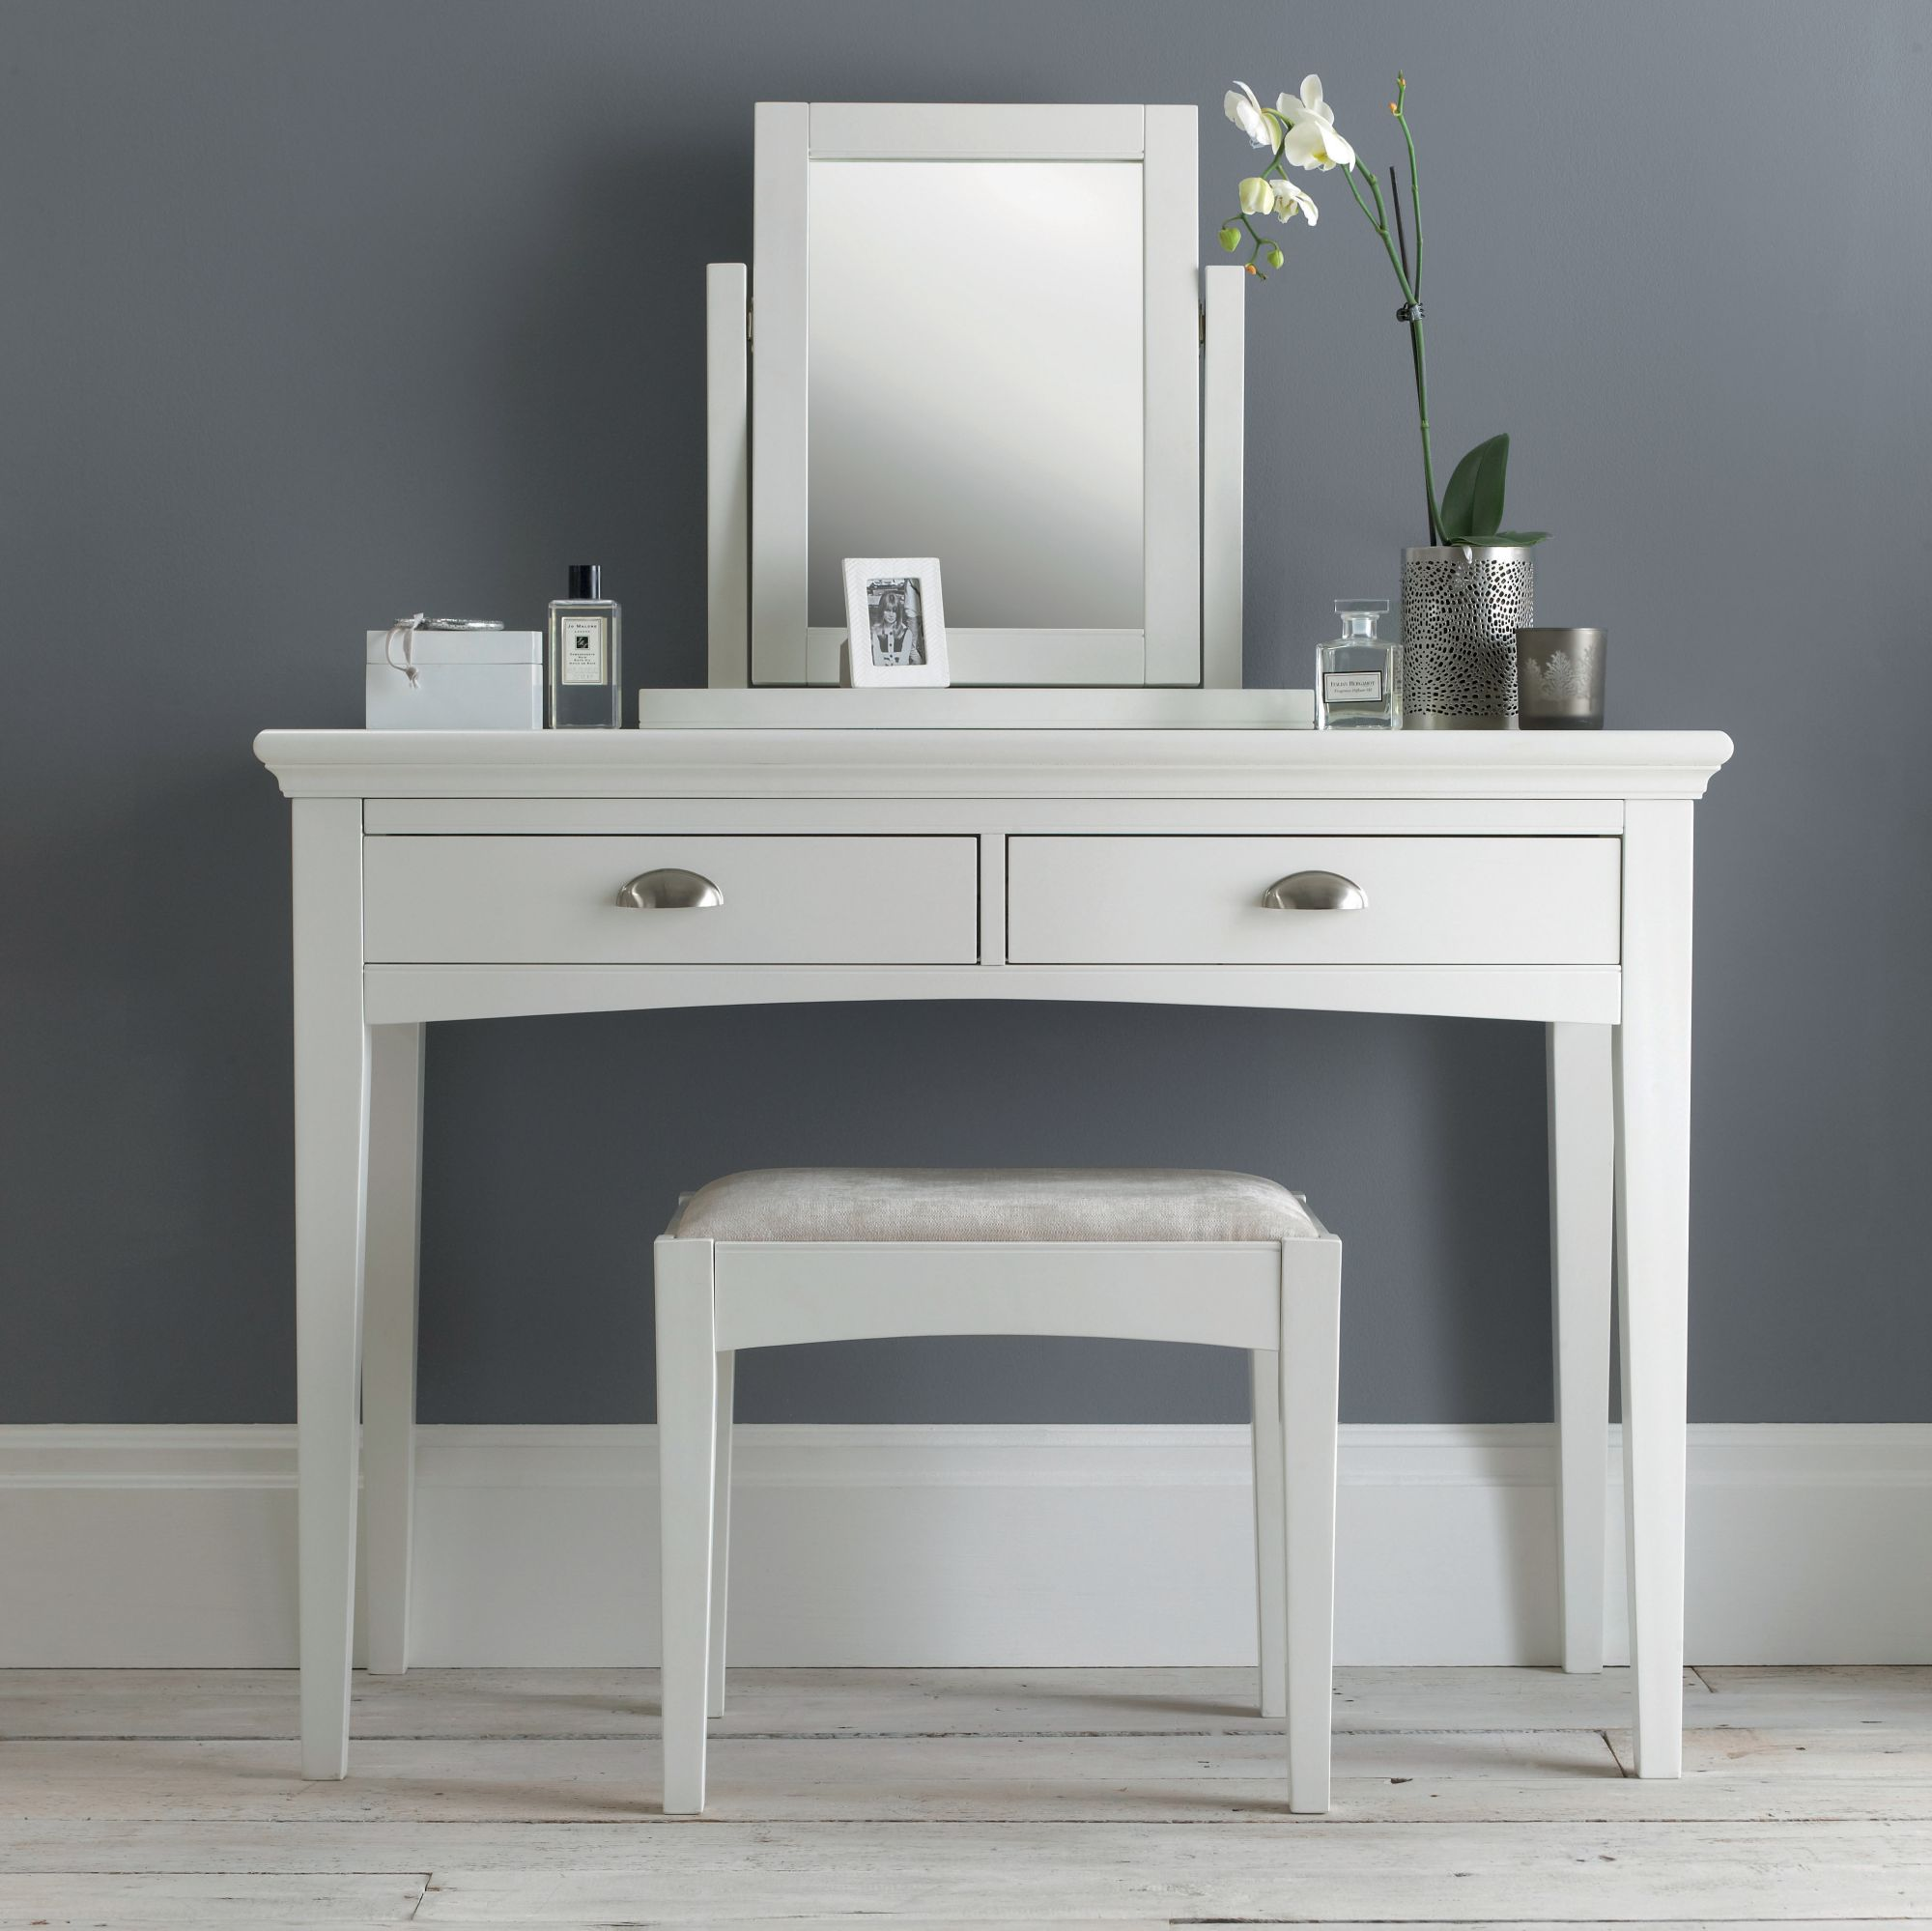 Hampstead white dressing table haven furniture for White dressing table for sale